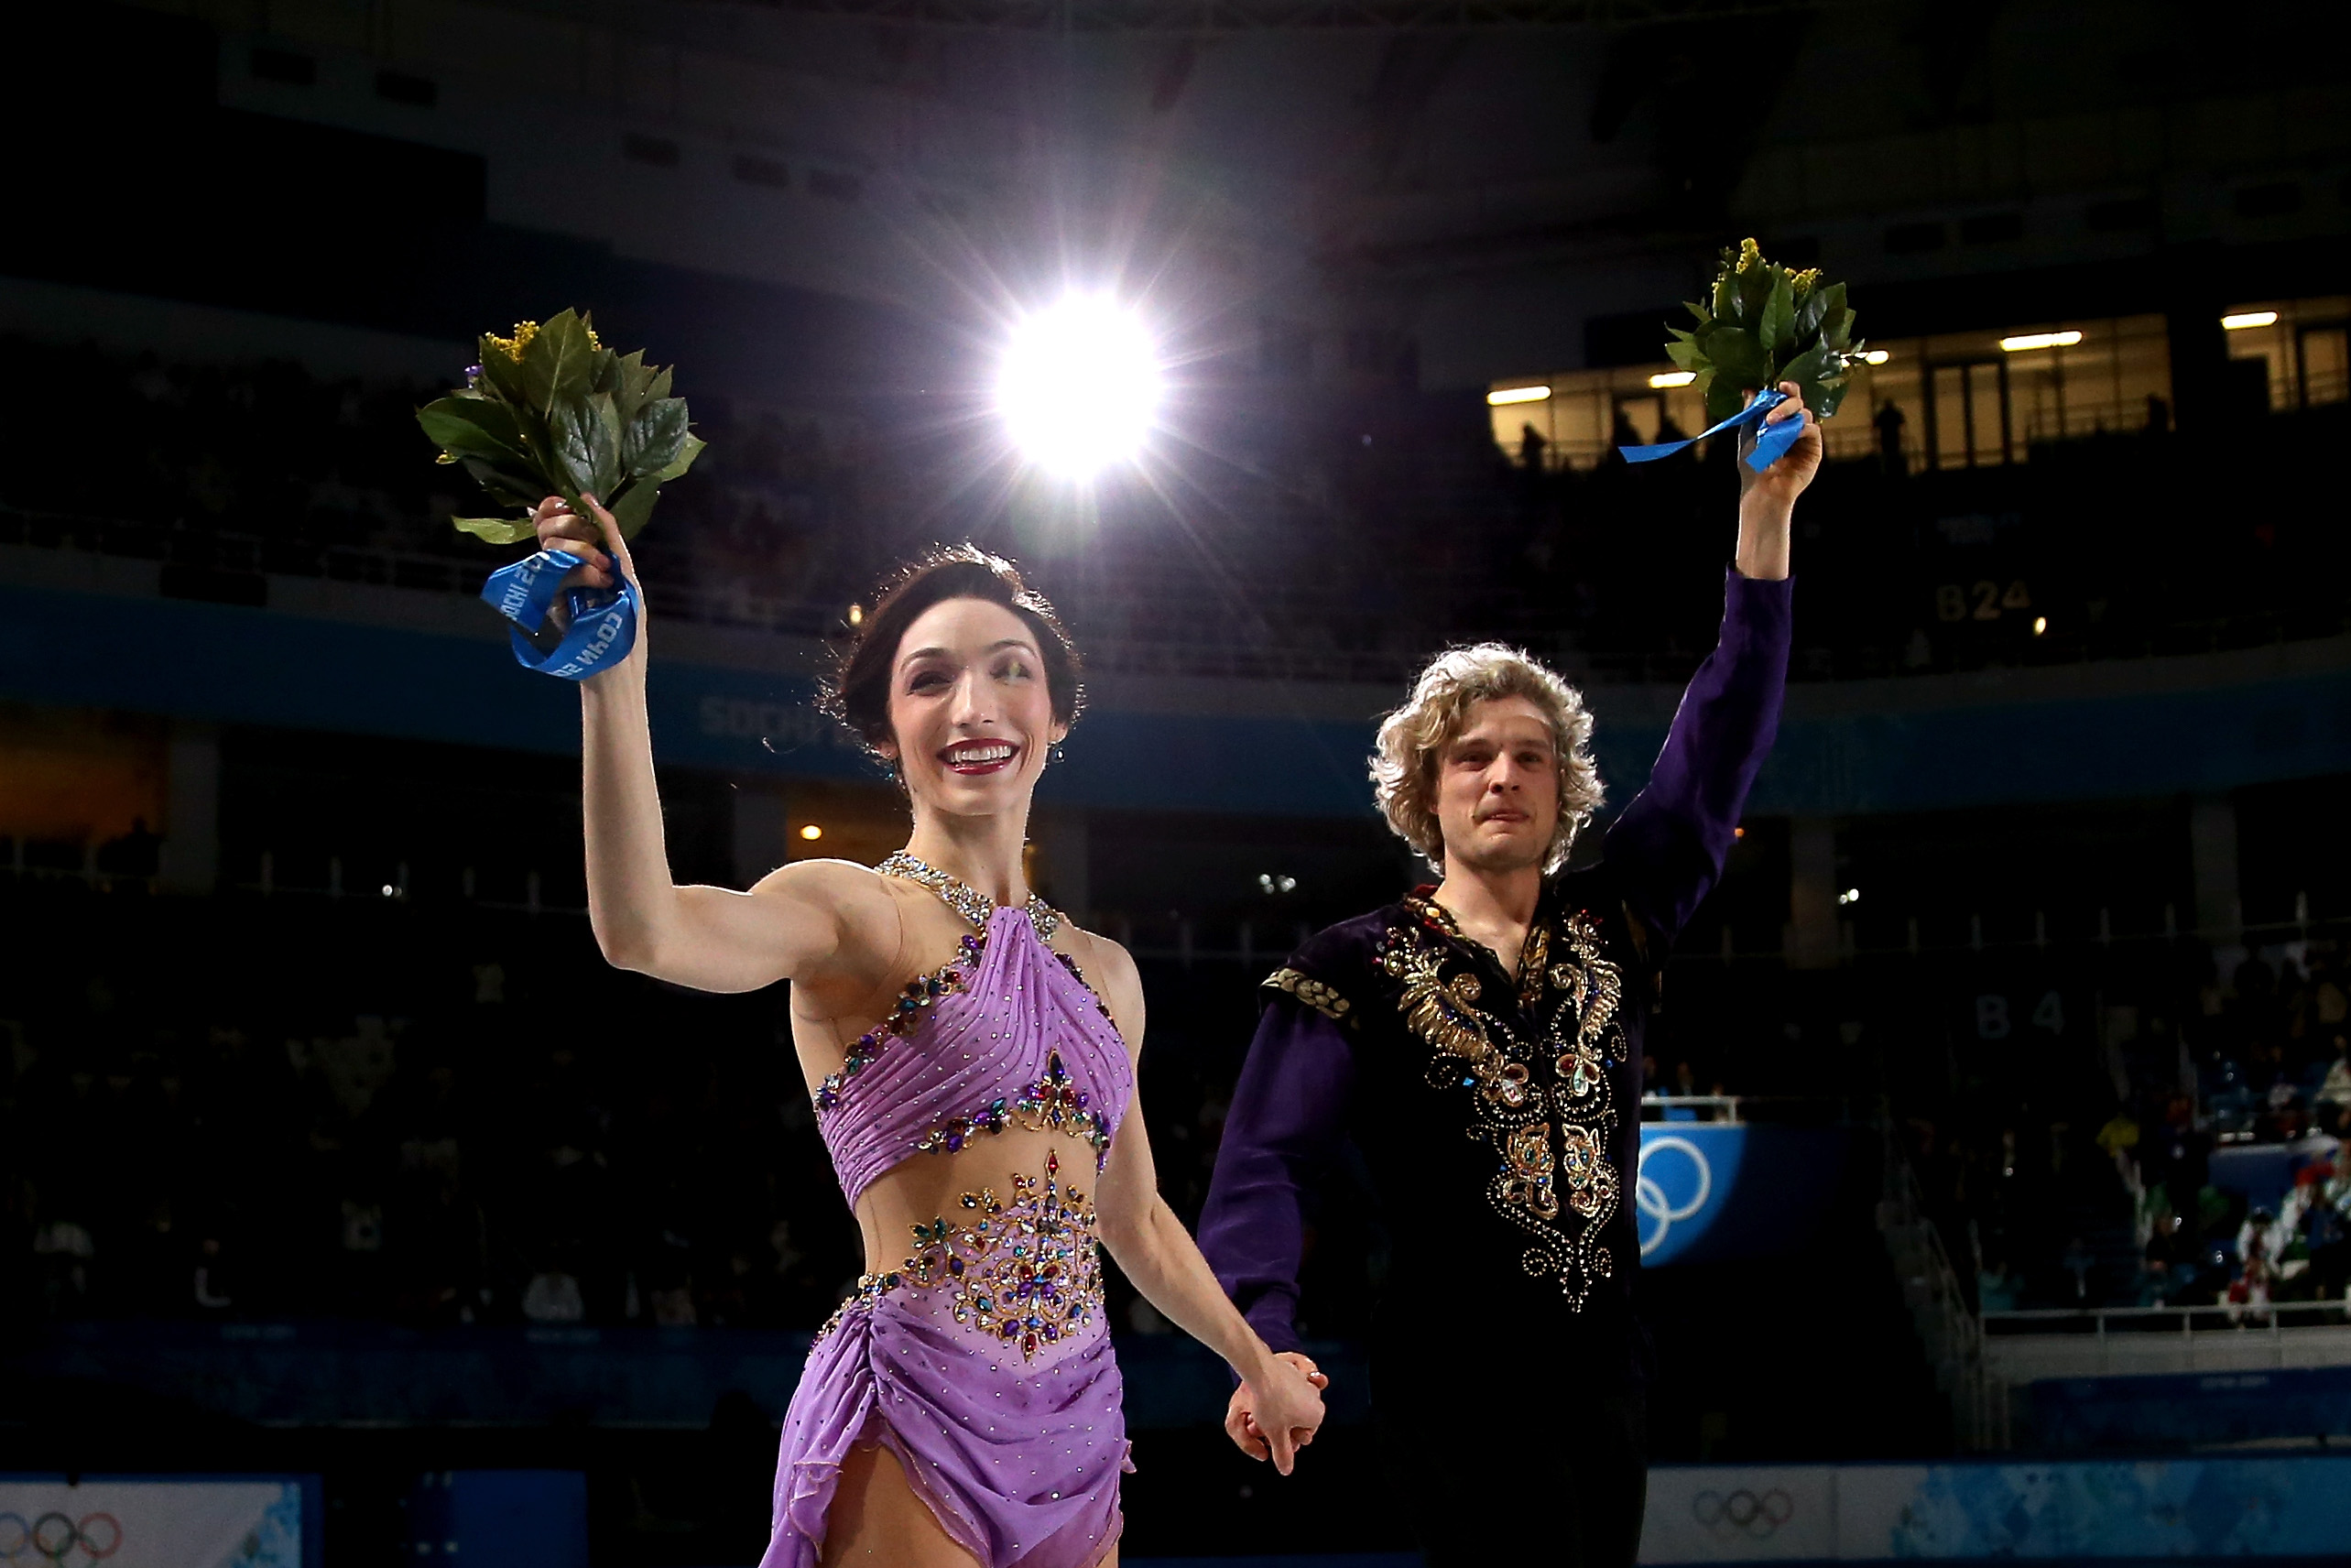 Meryl Davis and Charlie White of the U.S. celebrate in first place on the podium during the Figure Skating Ice Dance Free Dance Program.